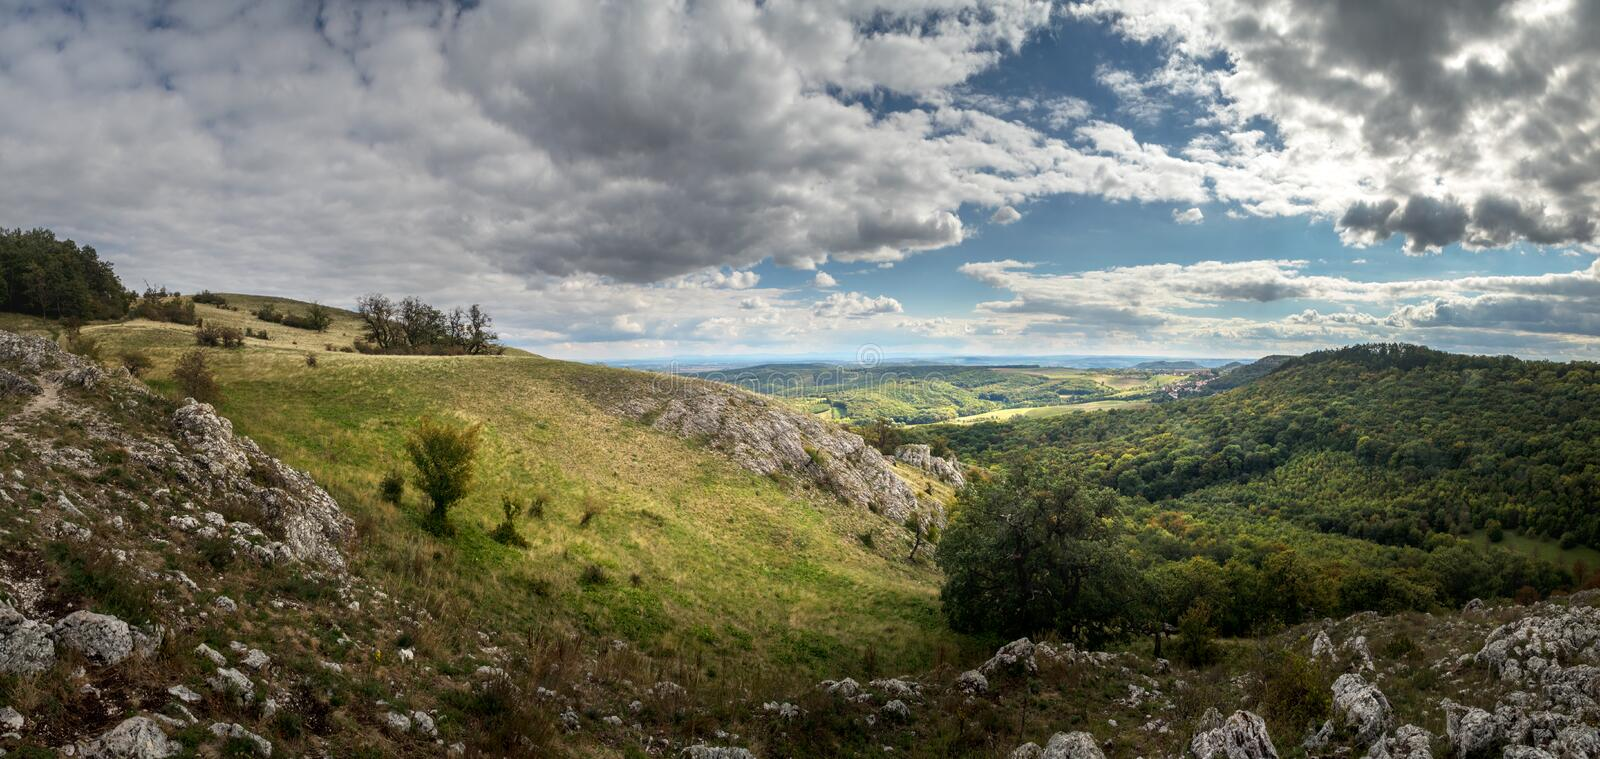 Panorama landscape with forested hills and rocks, cloudy sky stock image